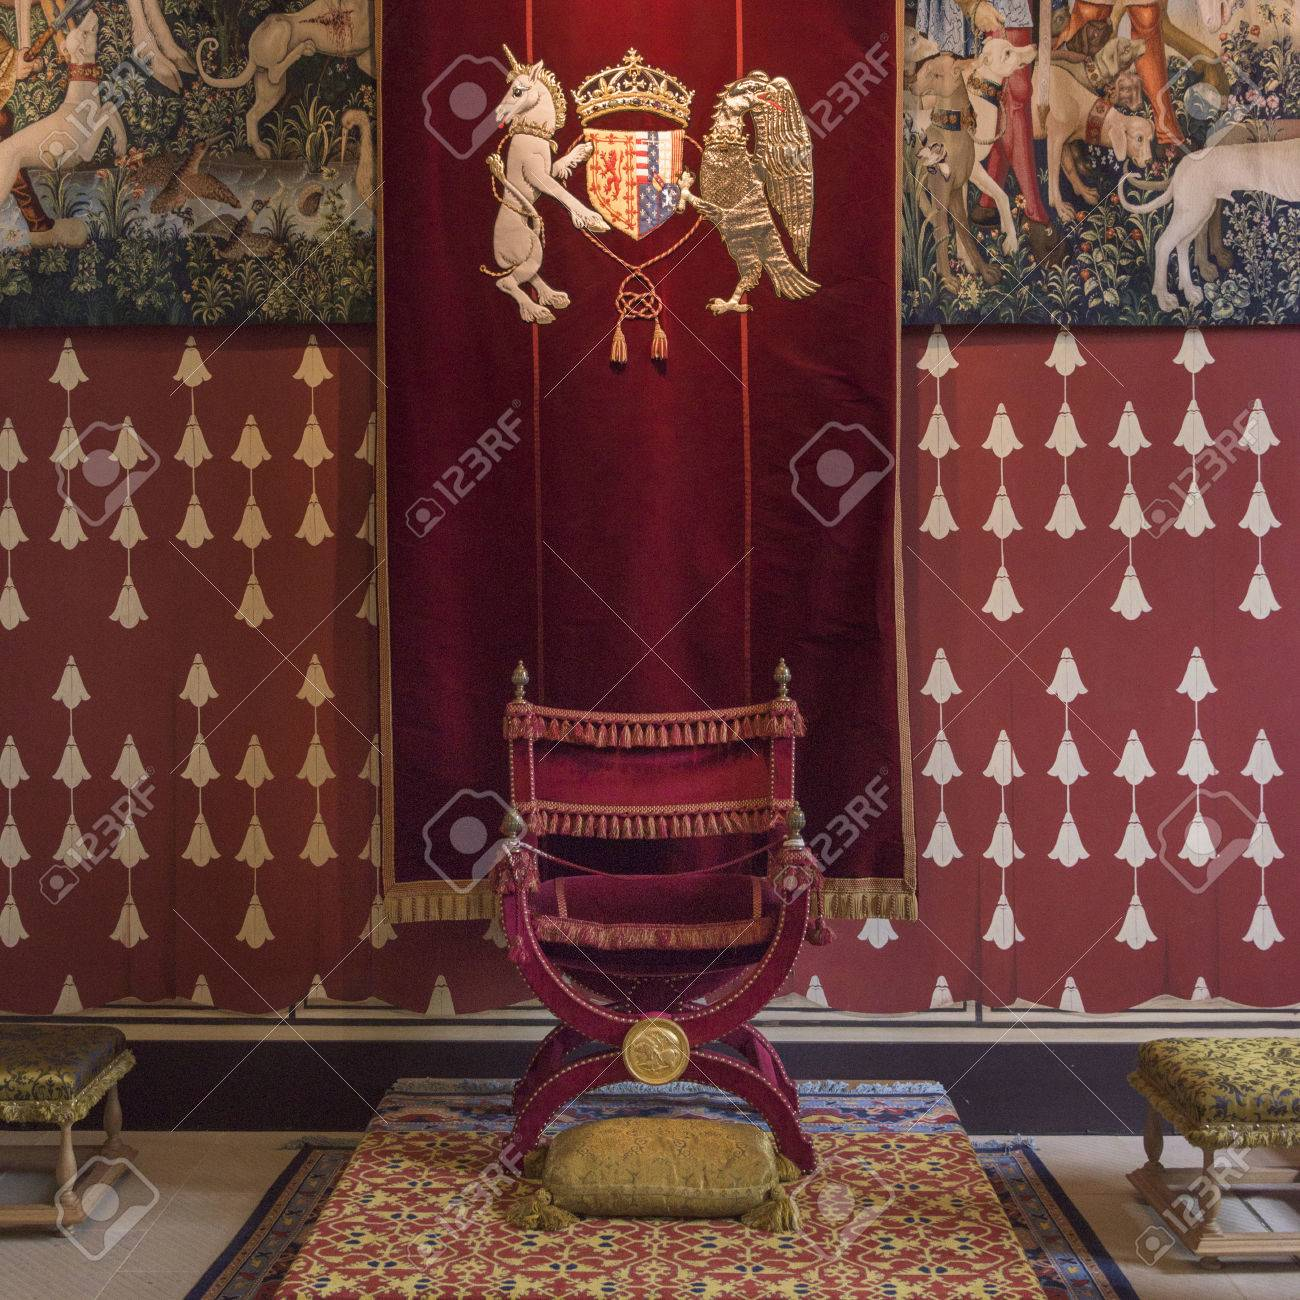 Throne Chair In Royal Palace Stirling Castle Scotland Stock Photo